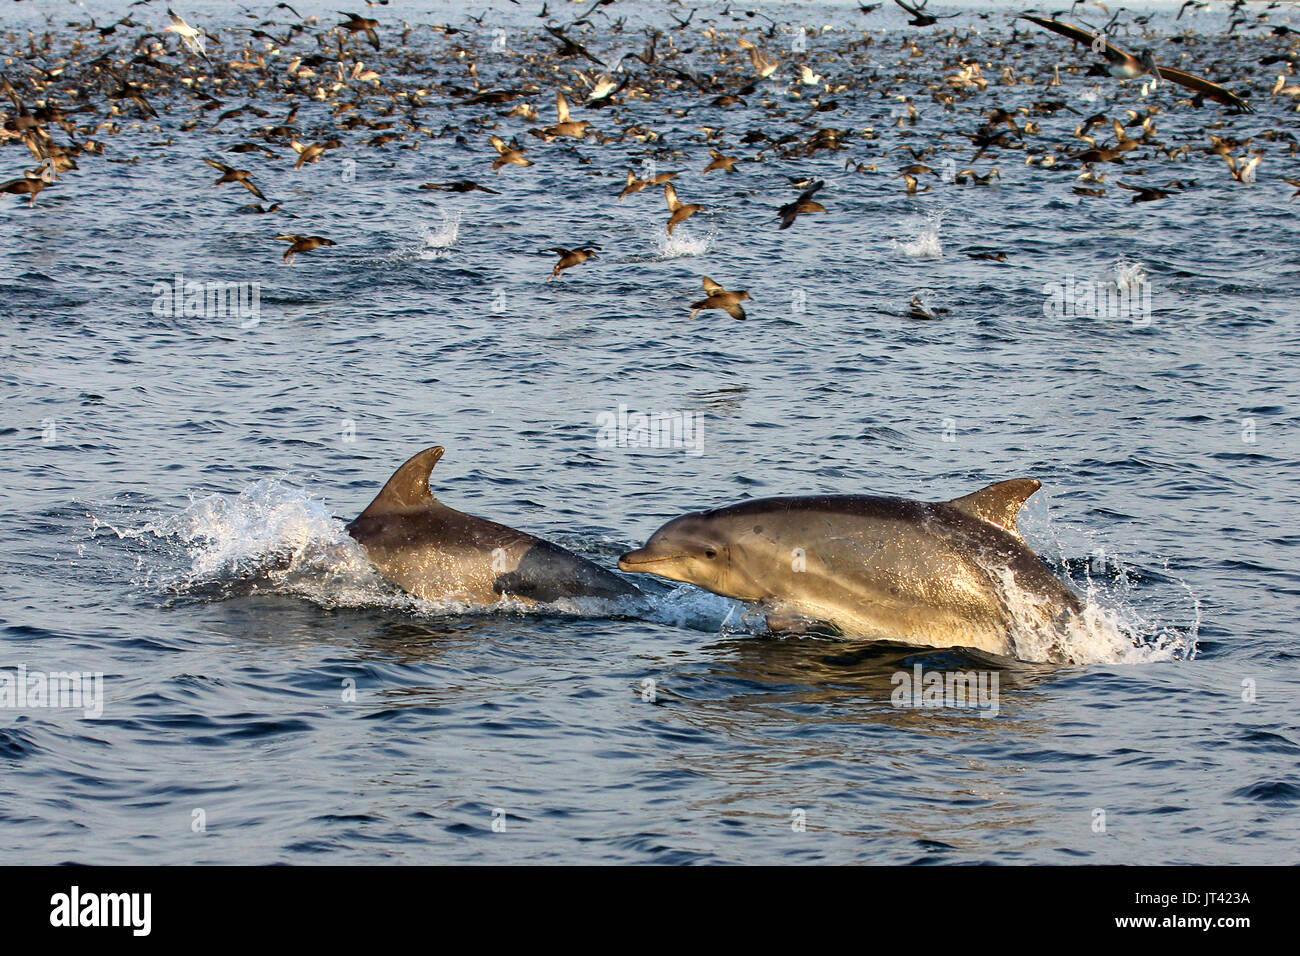 Common Bottlenose Dolphin (Tursiops truncates) at a feeding frenzy off the Fisherman's Wharf of Monterey at sunset - Stock Image